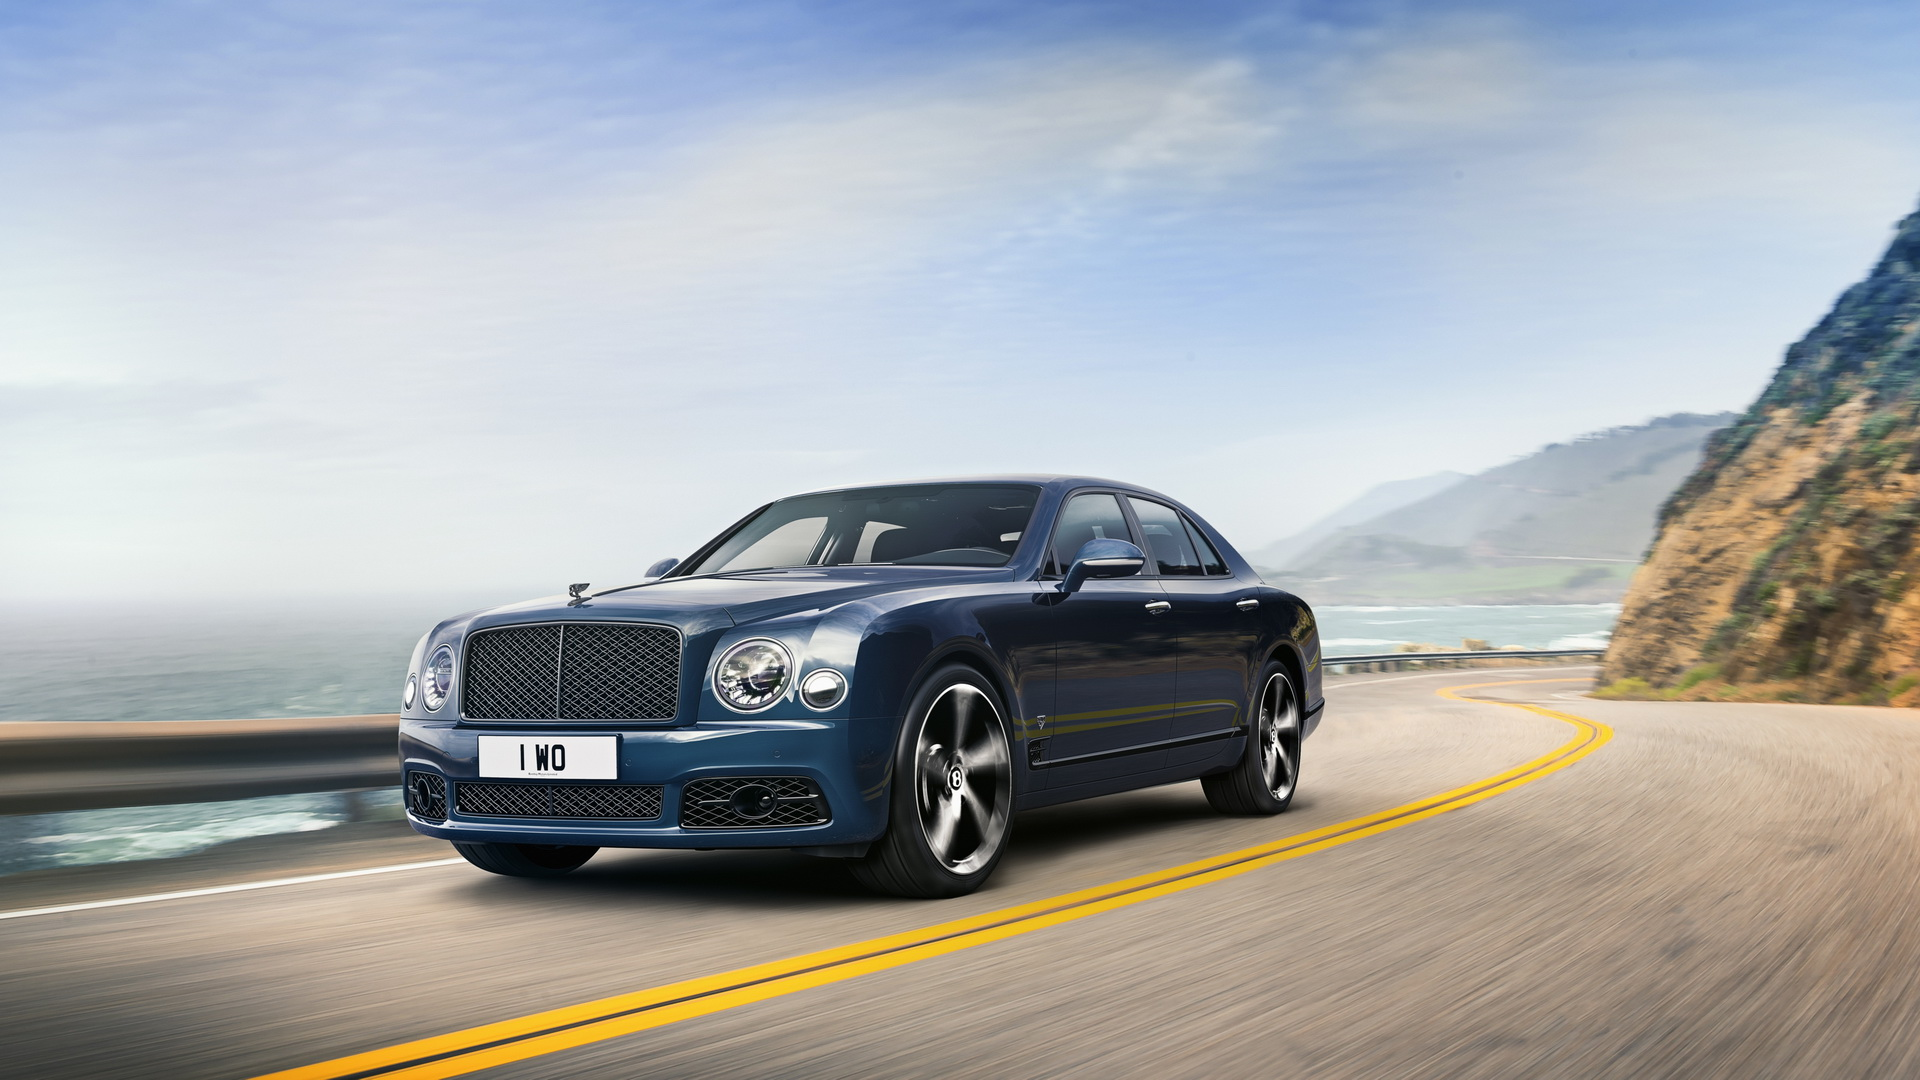 2020-bentley-mulsanne-final-edition-1.jpg